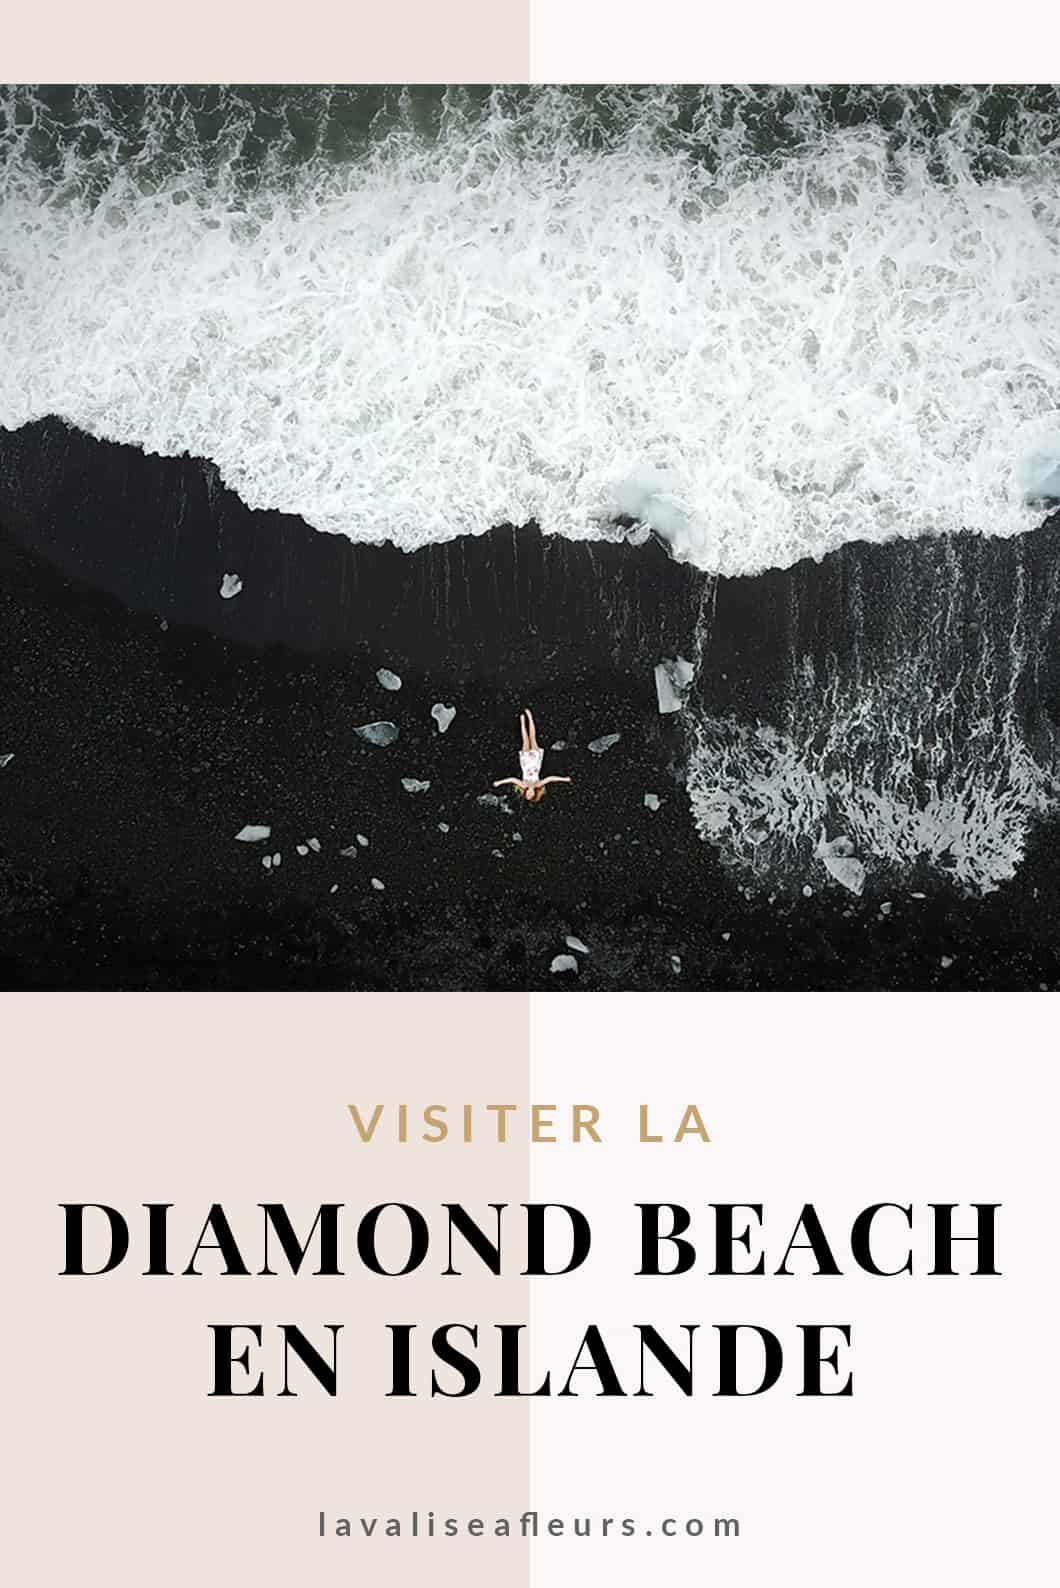 Visiter la Diamond Beach en Islande